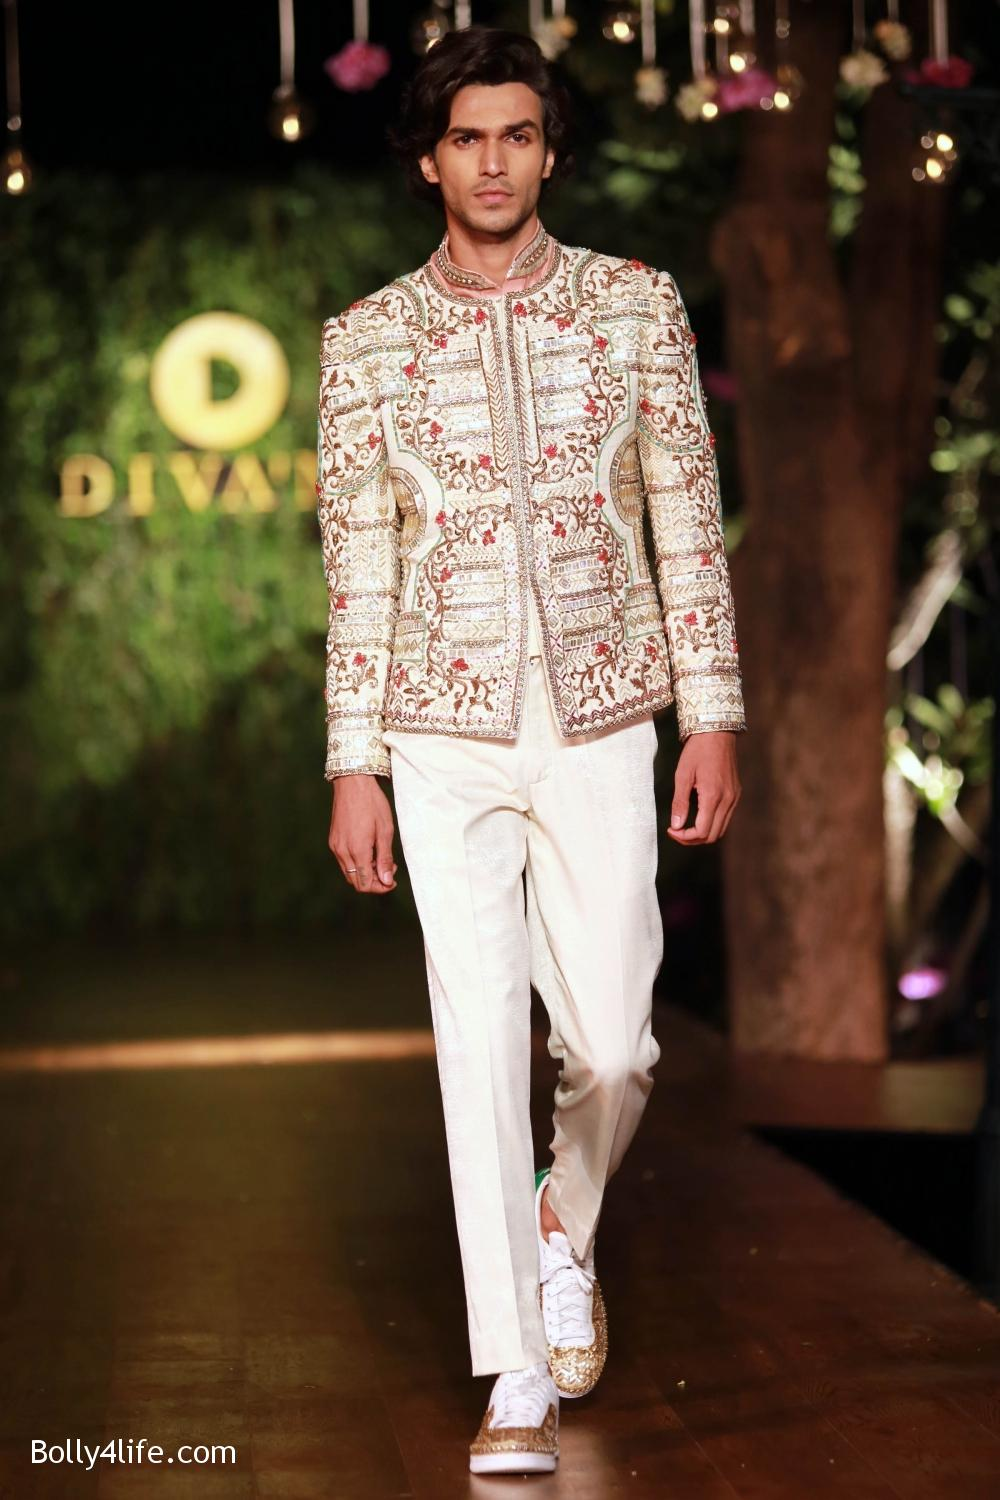 Divani-Fashion-Show-Ranveer-Singh-and-Vaani-Kapoor-4.jpg